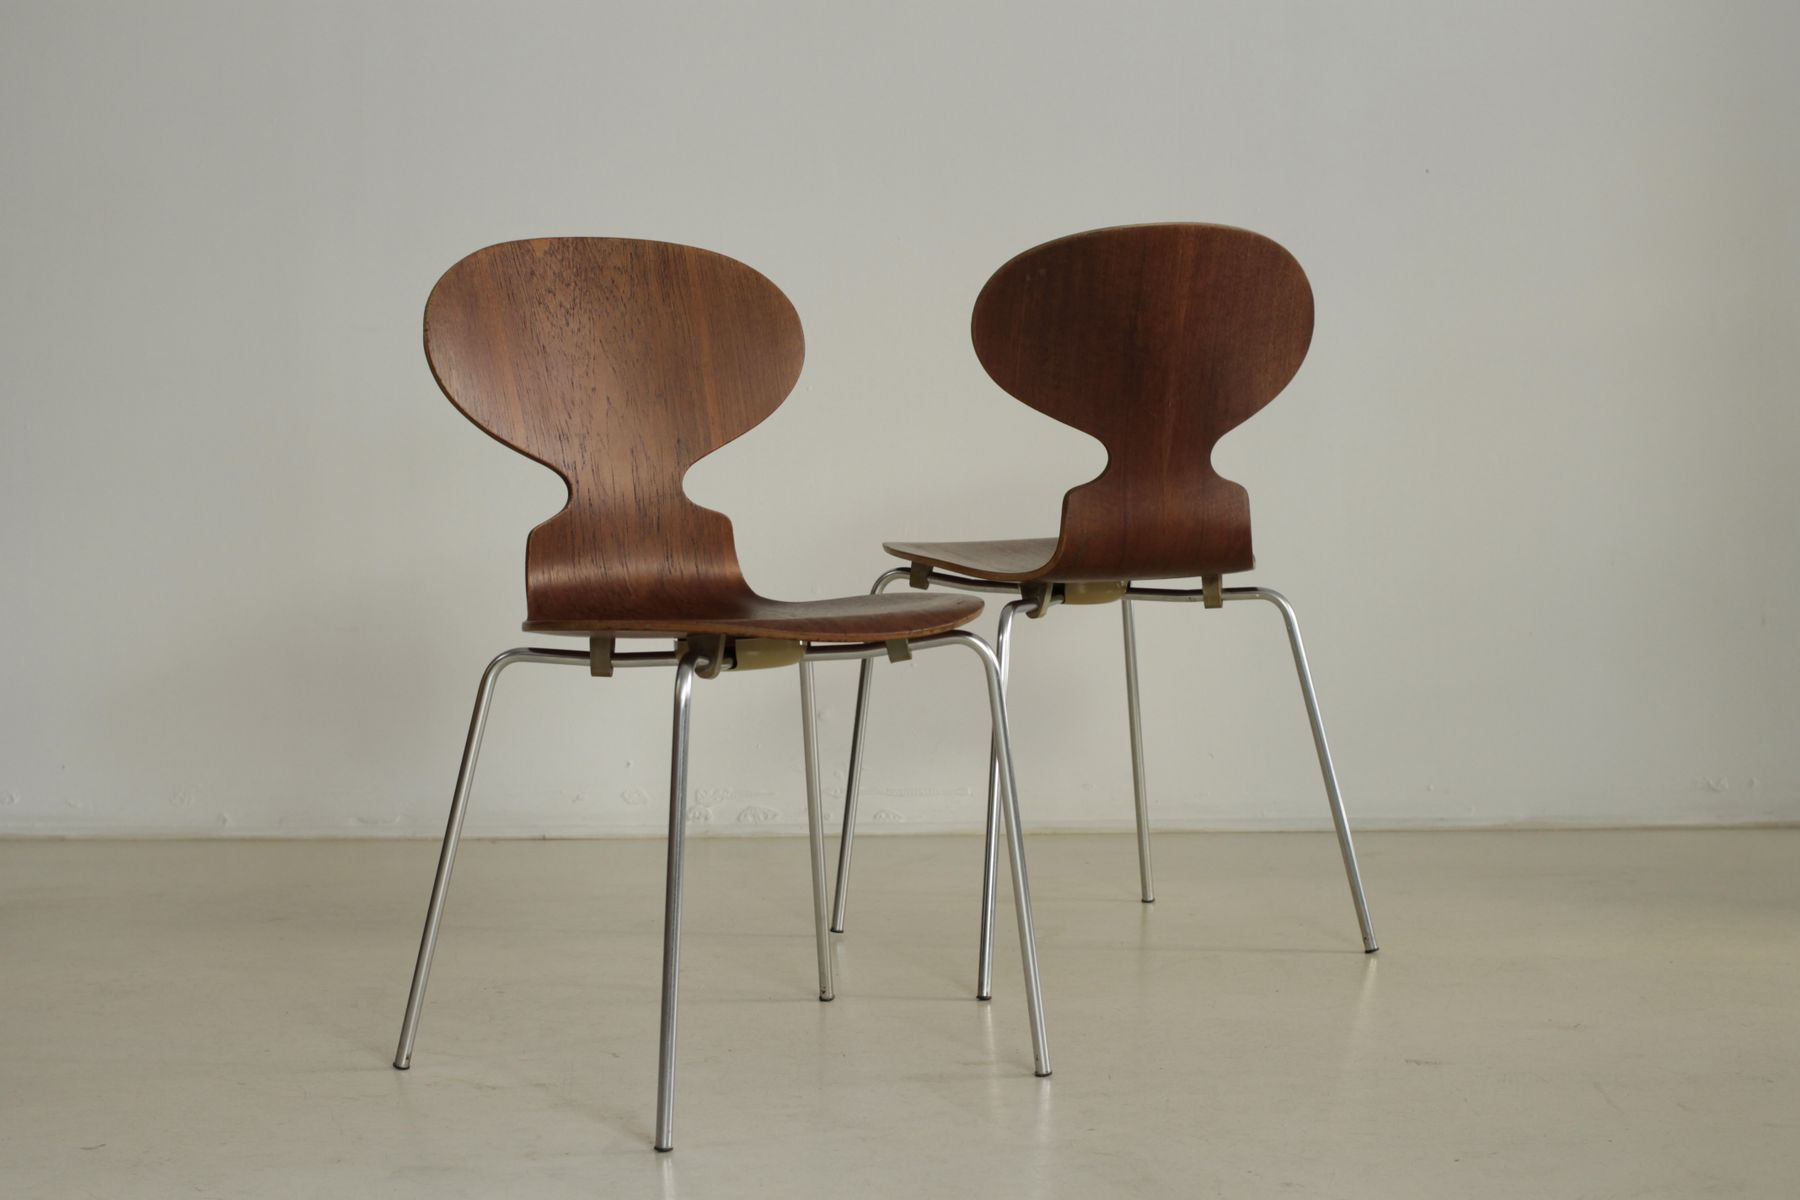 3101 chairs by arne jacobsen for fritz hansen 1973 set of 2 for sale at pamono. Black Bedroom Furniture Sets. Home Design Ideas